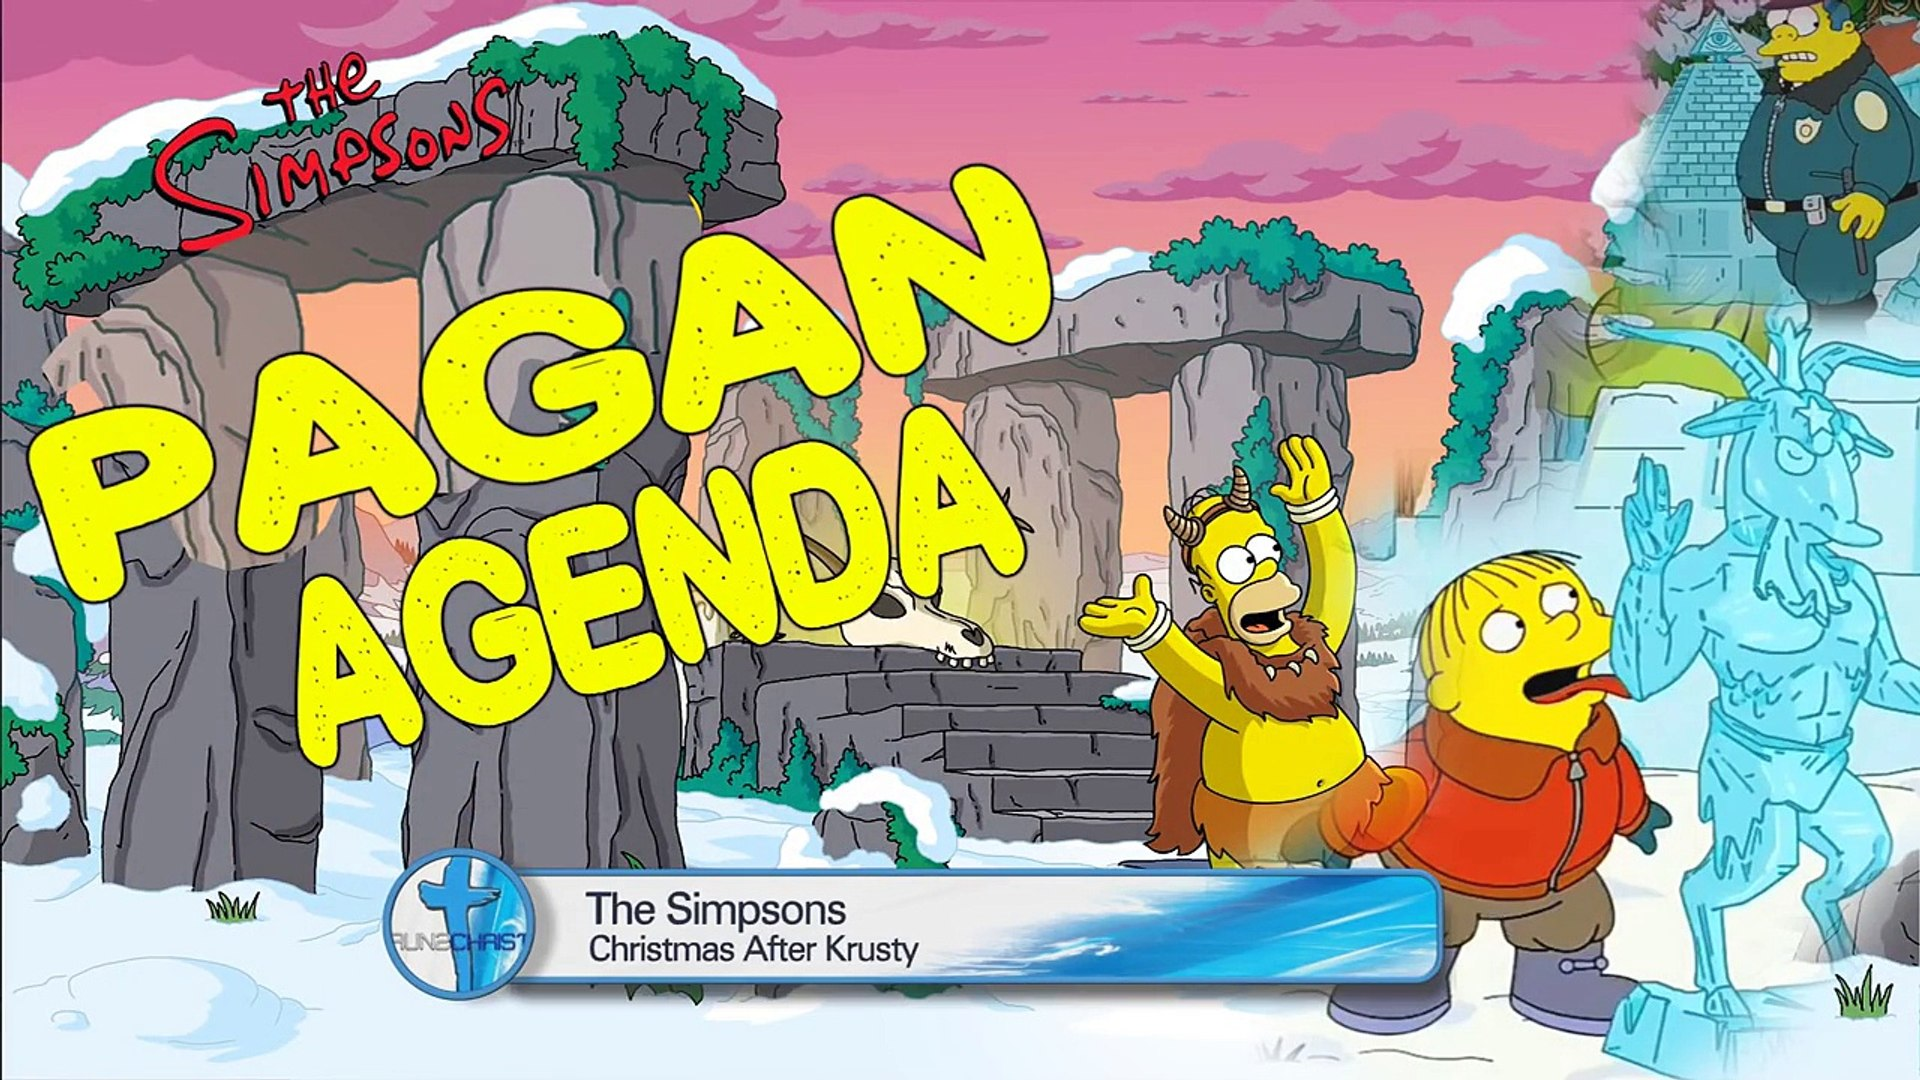 The Simpsons Pagan Agenda Exposed 2016 Christmas Episode Run2christ